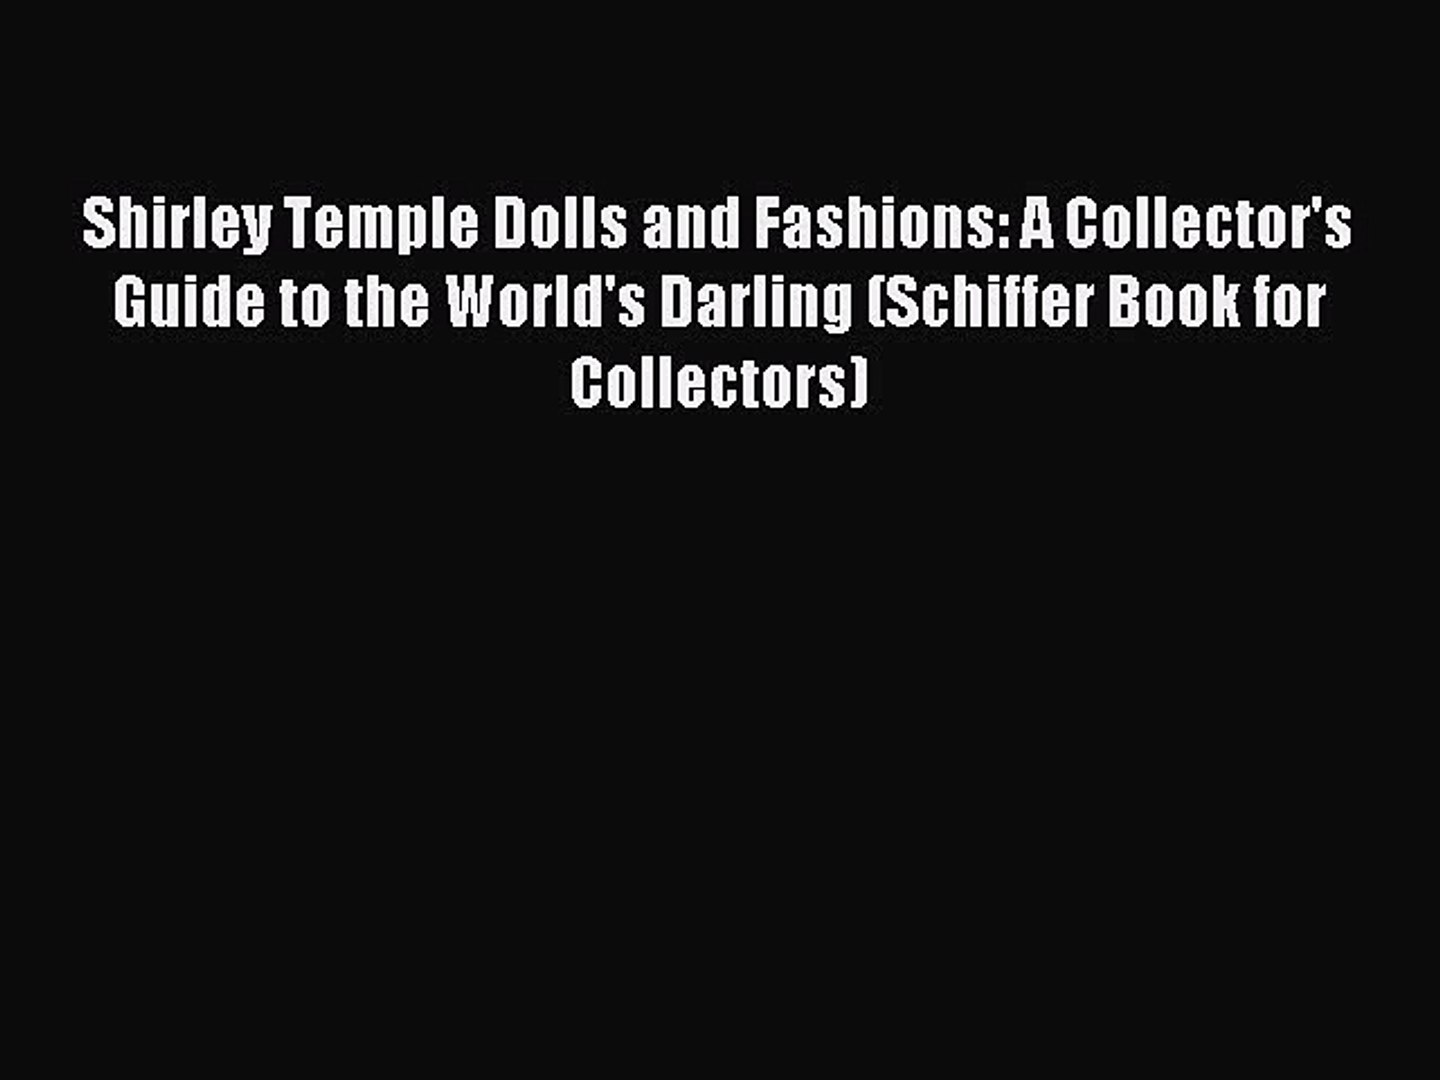 Read Shirley Temple Dolls and Fashions: A Collector's Guide to the World's Darling (Schiff